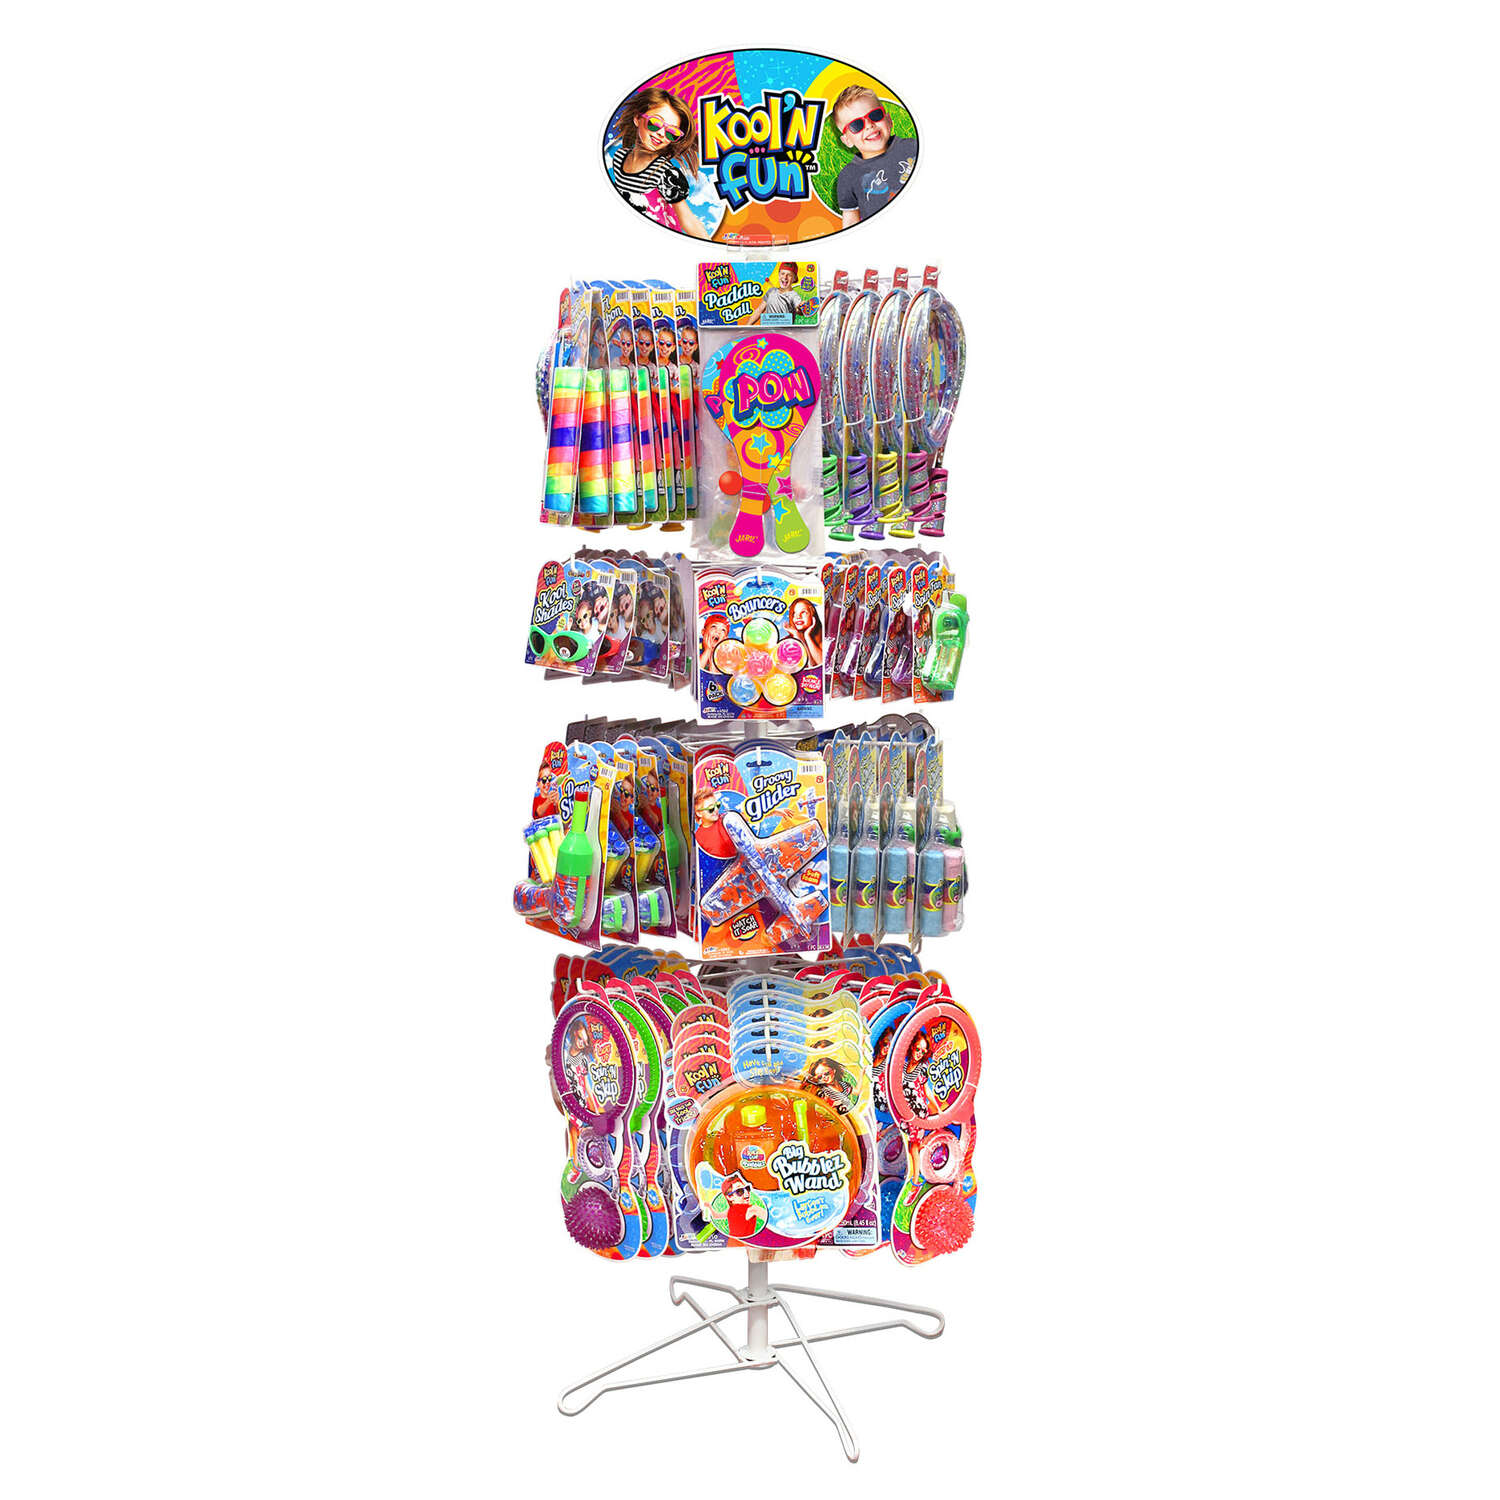 Kool N Fun  Kool N' Fun  Toy  Plastic  1 pc.